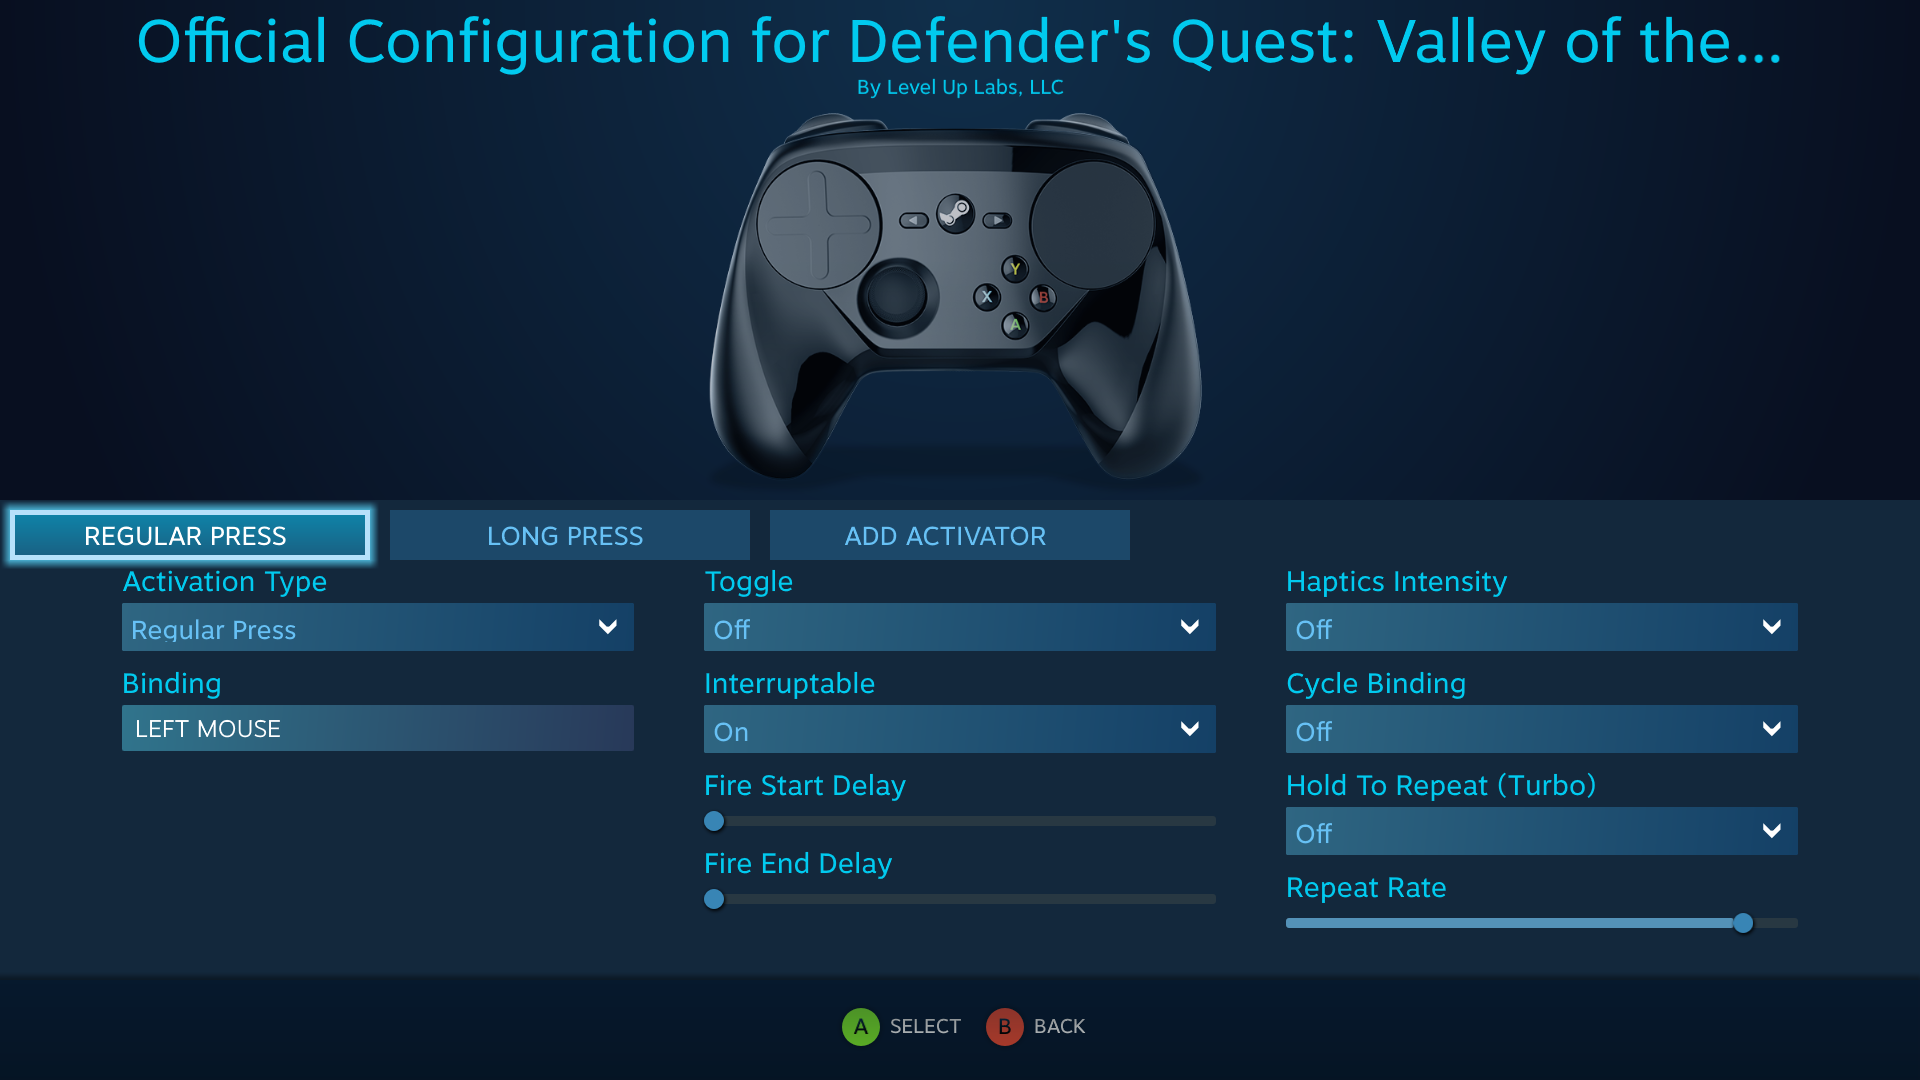 Defender's Quest Steam Controller Configuration Screen -- Battle Actions, LEFT MOUSE binding